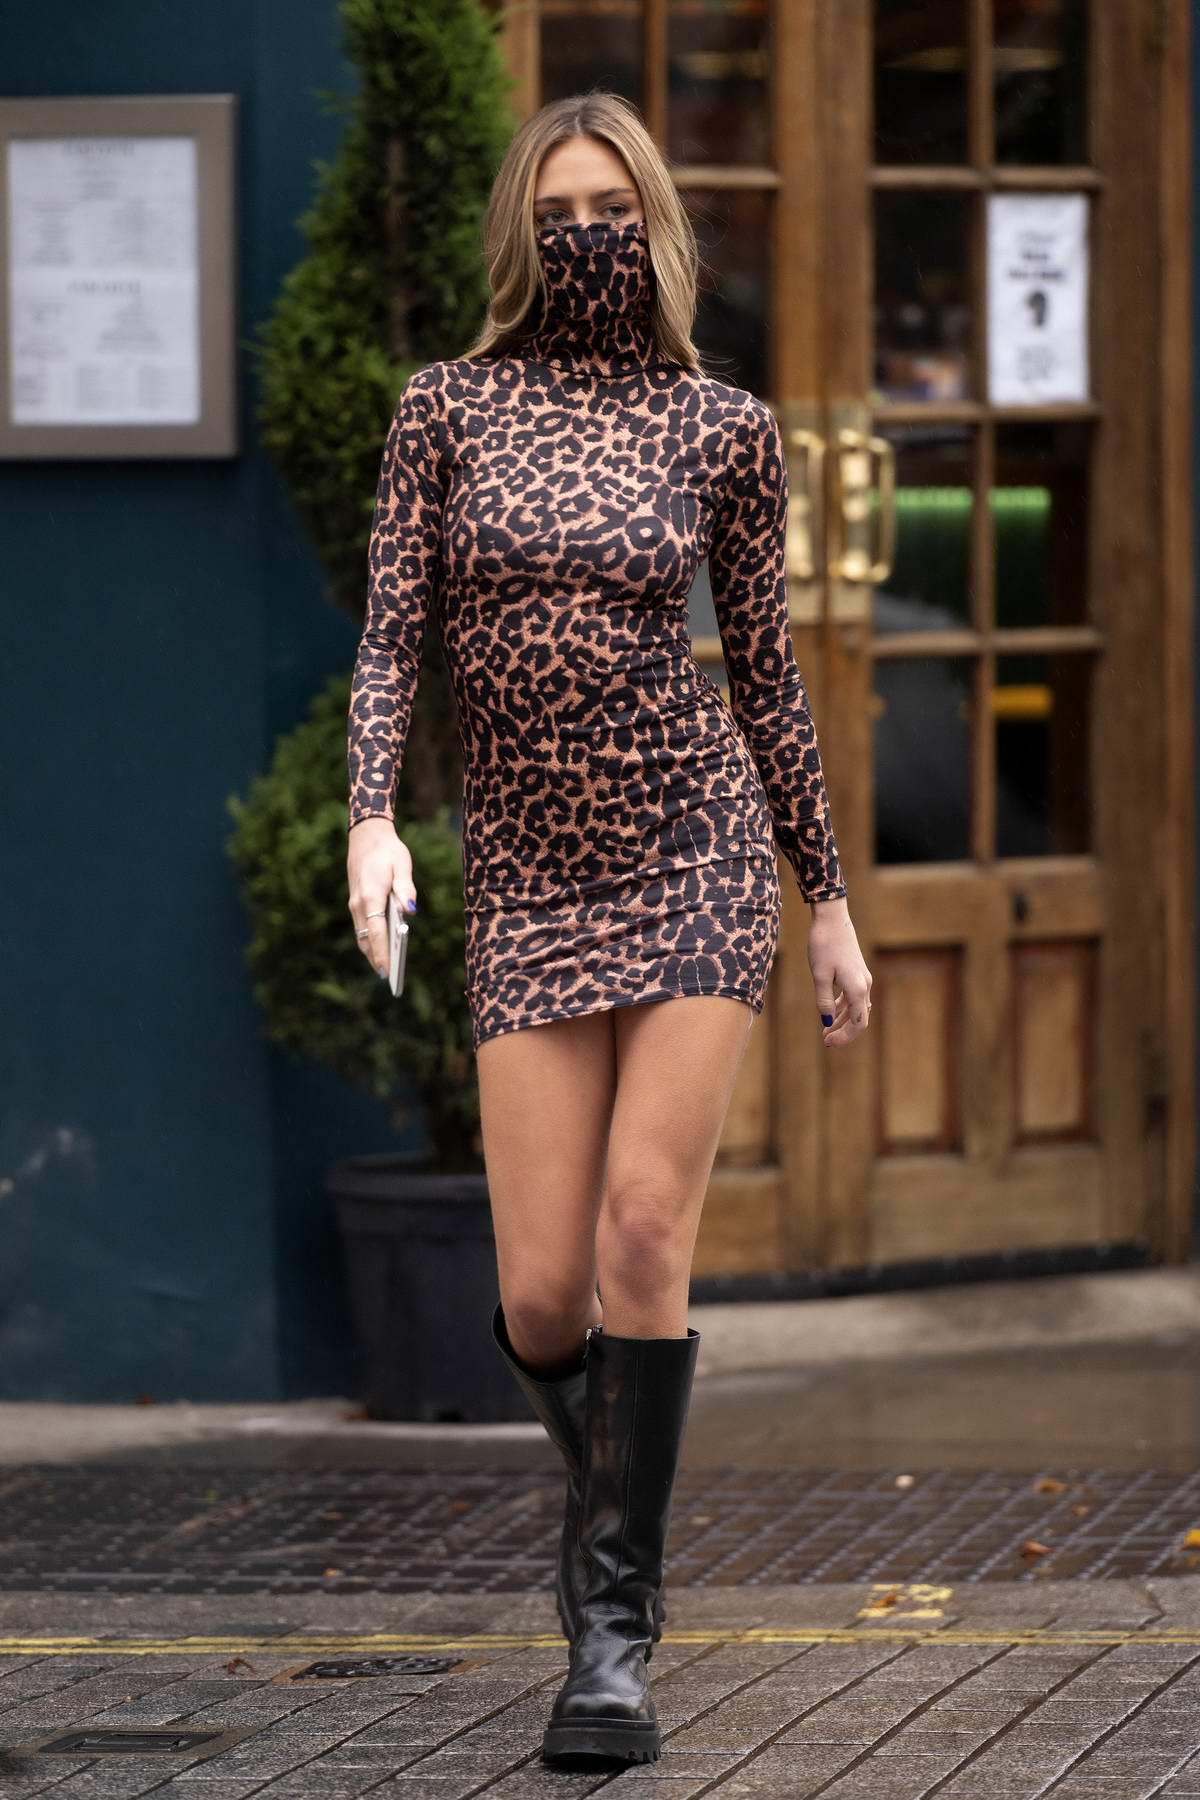 Delilah Hamlin looks stunning in PrettyLittleThing's leopard print mask dress while out in London, UK